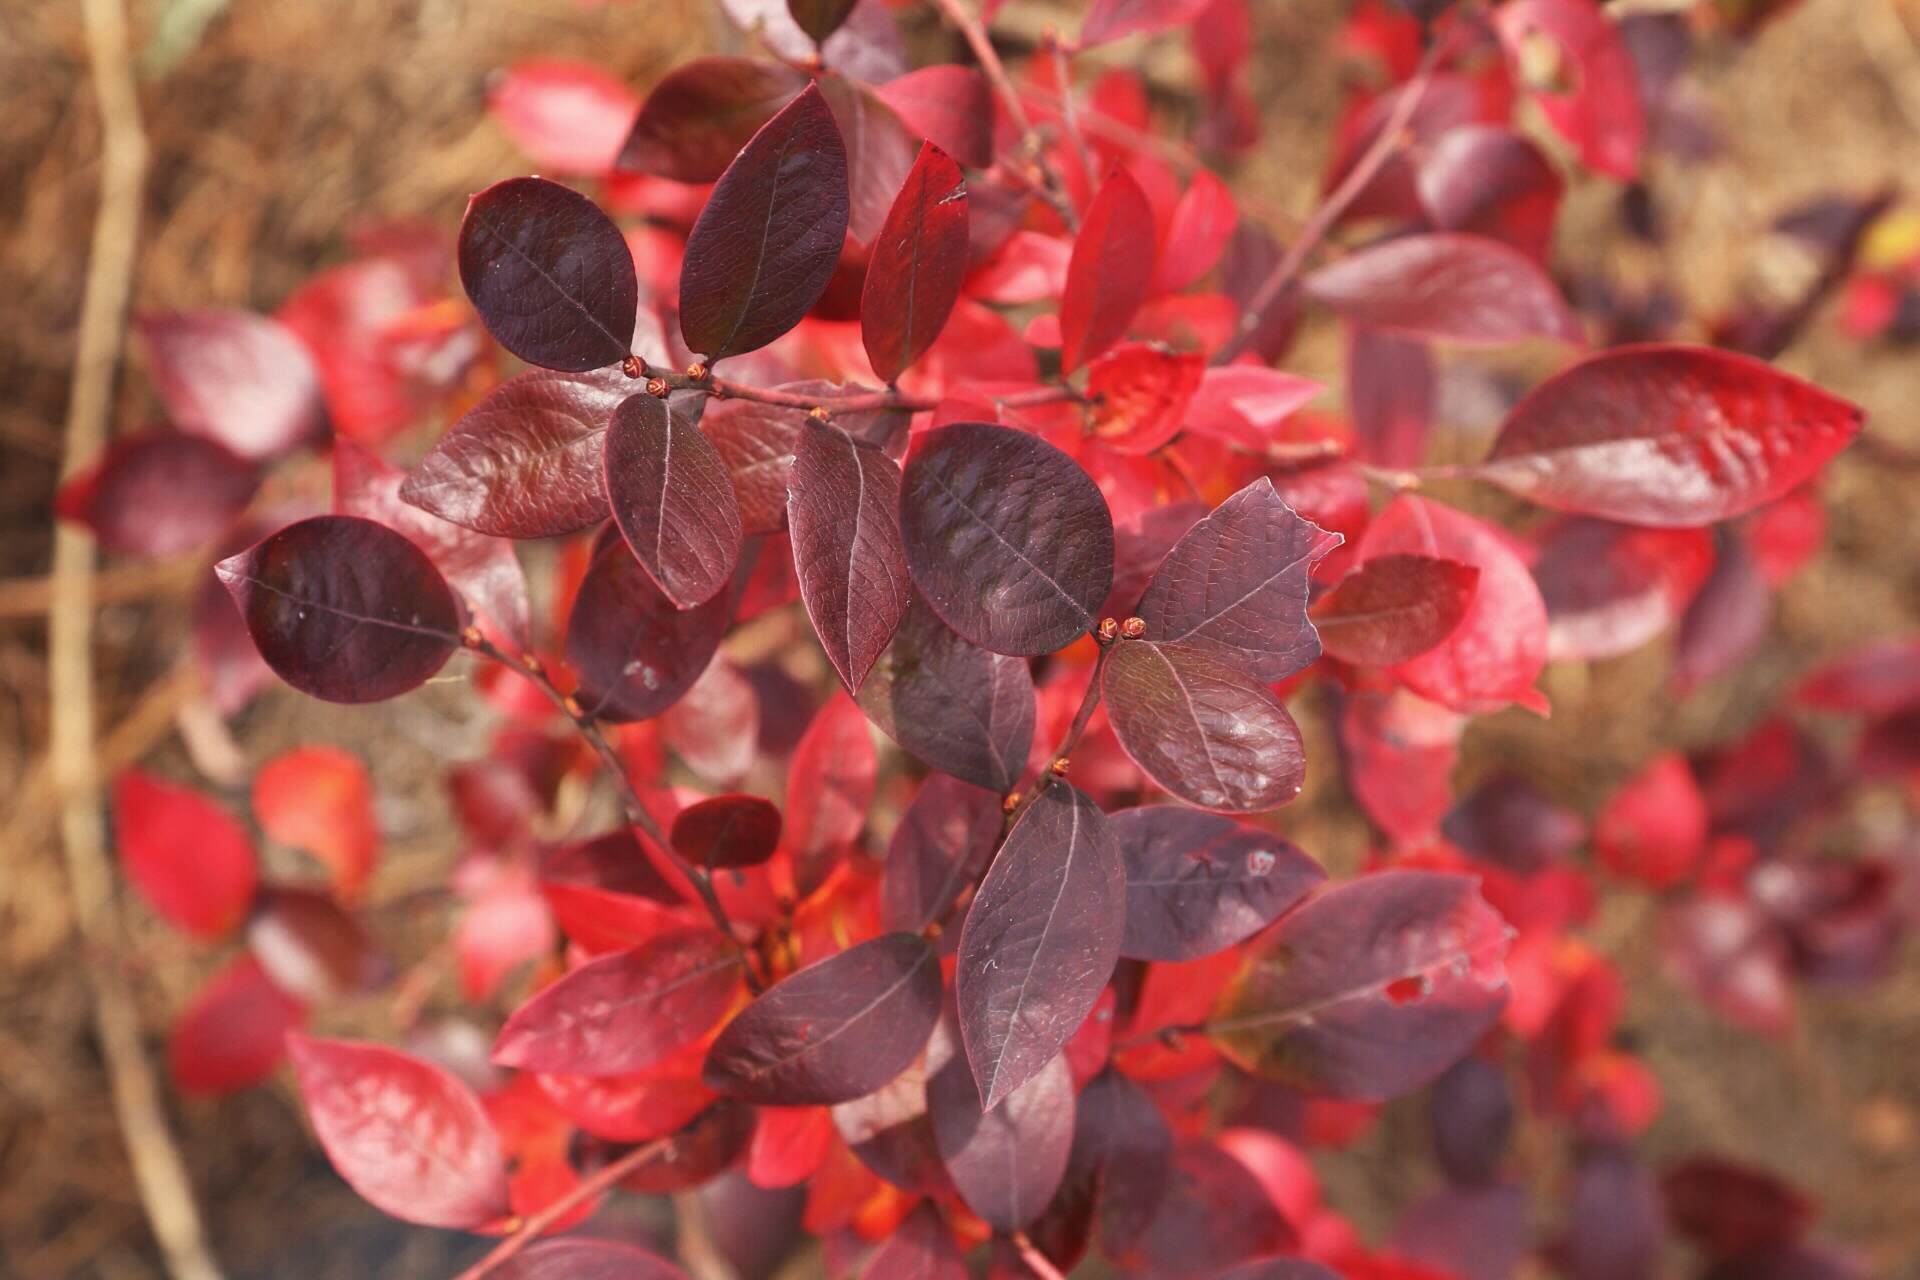 Purple leaves mature to a bright red on this blueberry bush